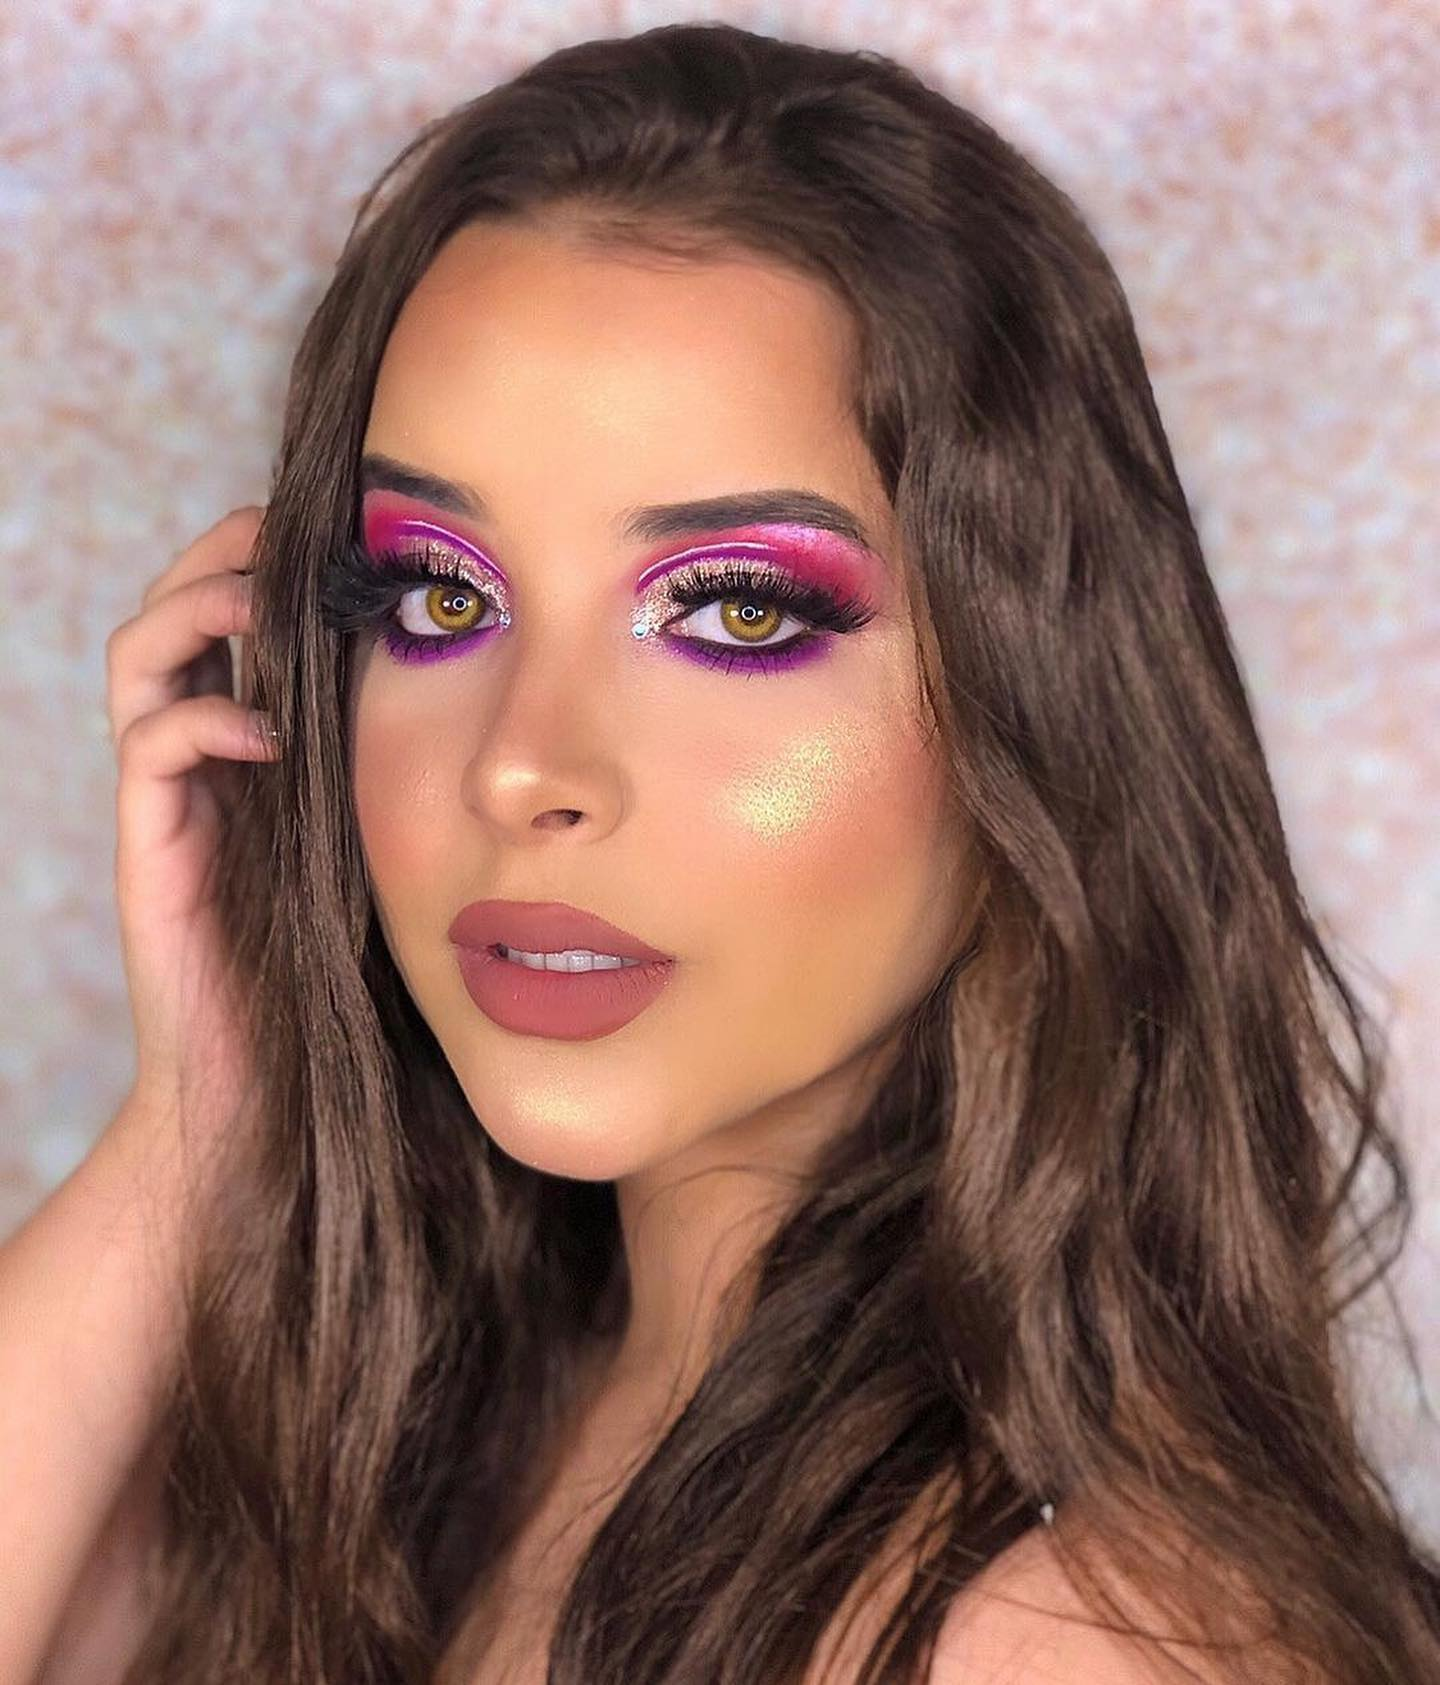 Girl with Bright Make-up Tilting Head